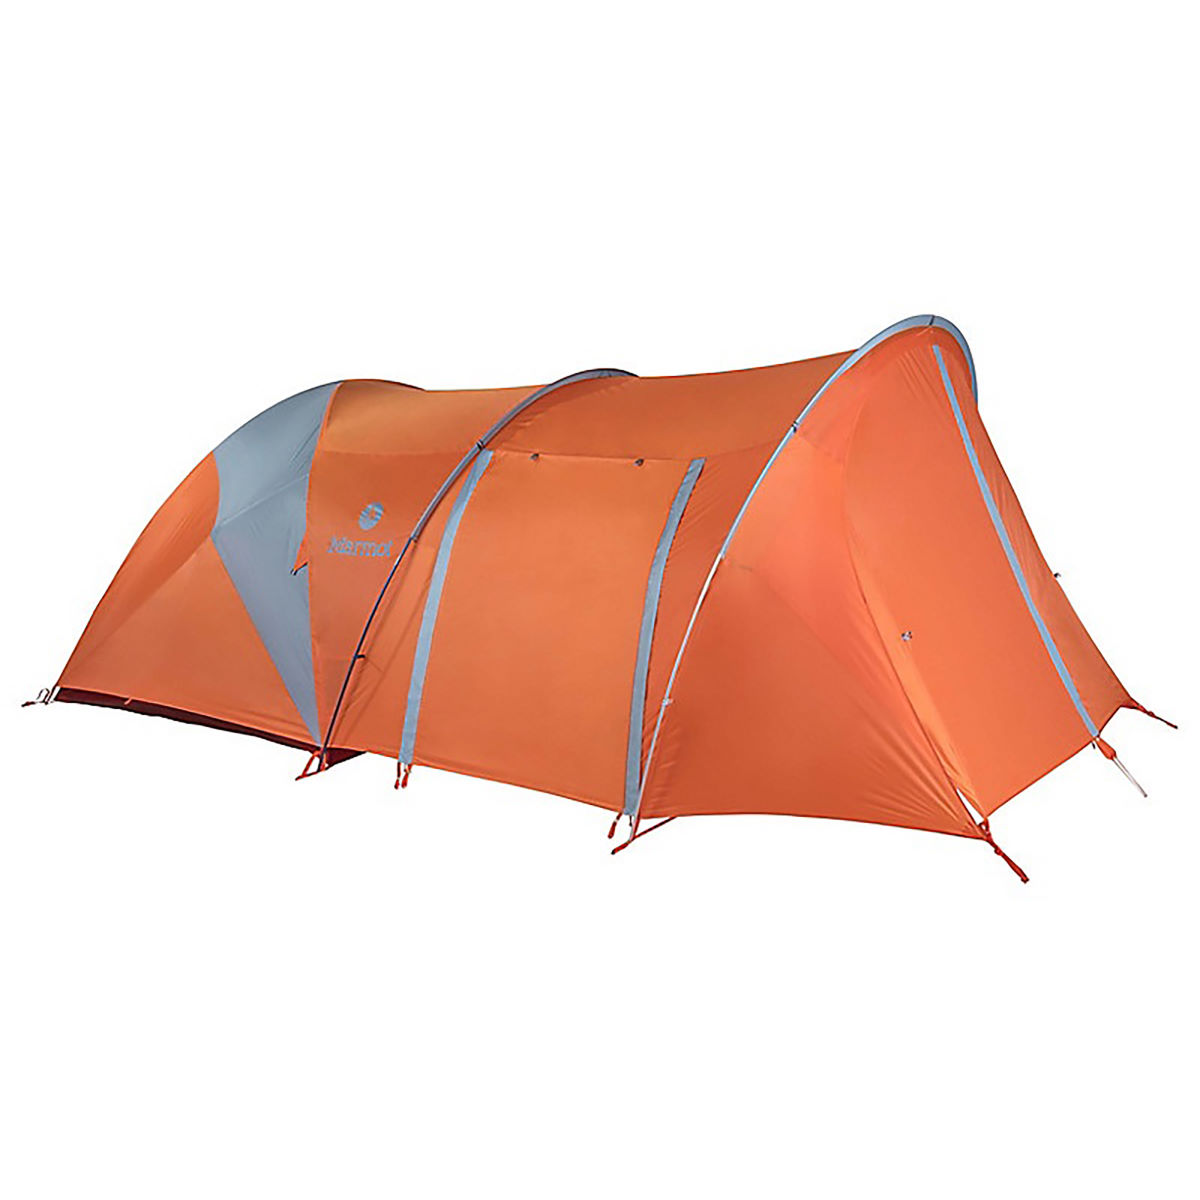 Marmot Marmot Orbit 4P Tent   Tents